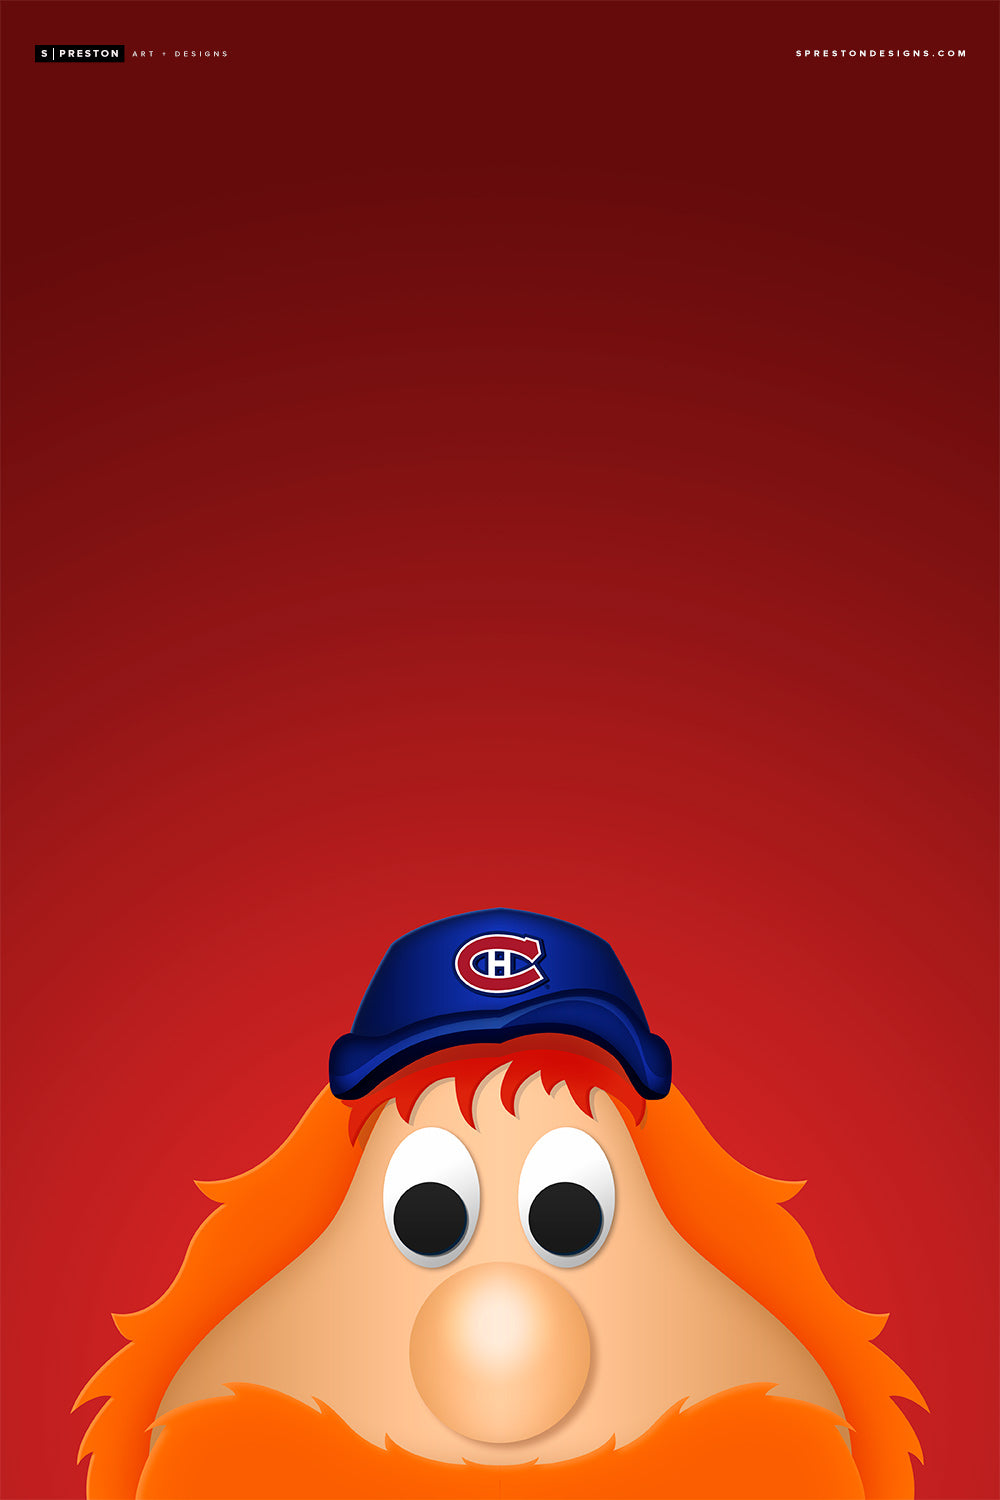 Minimalist Youppi! Art Print - Montreal Canadiens - S. Preston Art + Designs